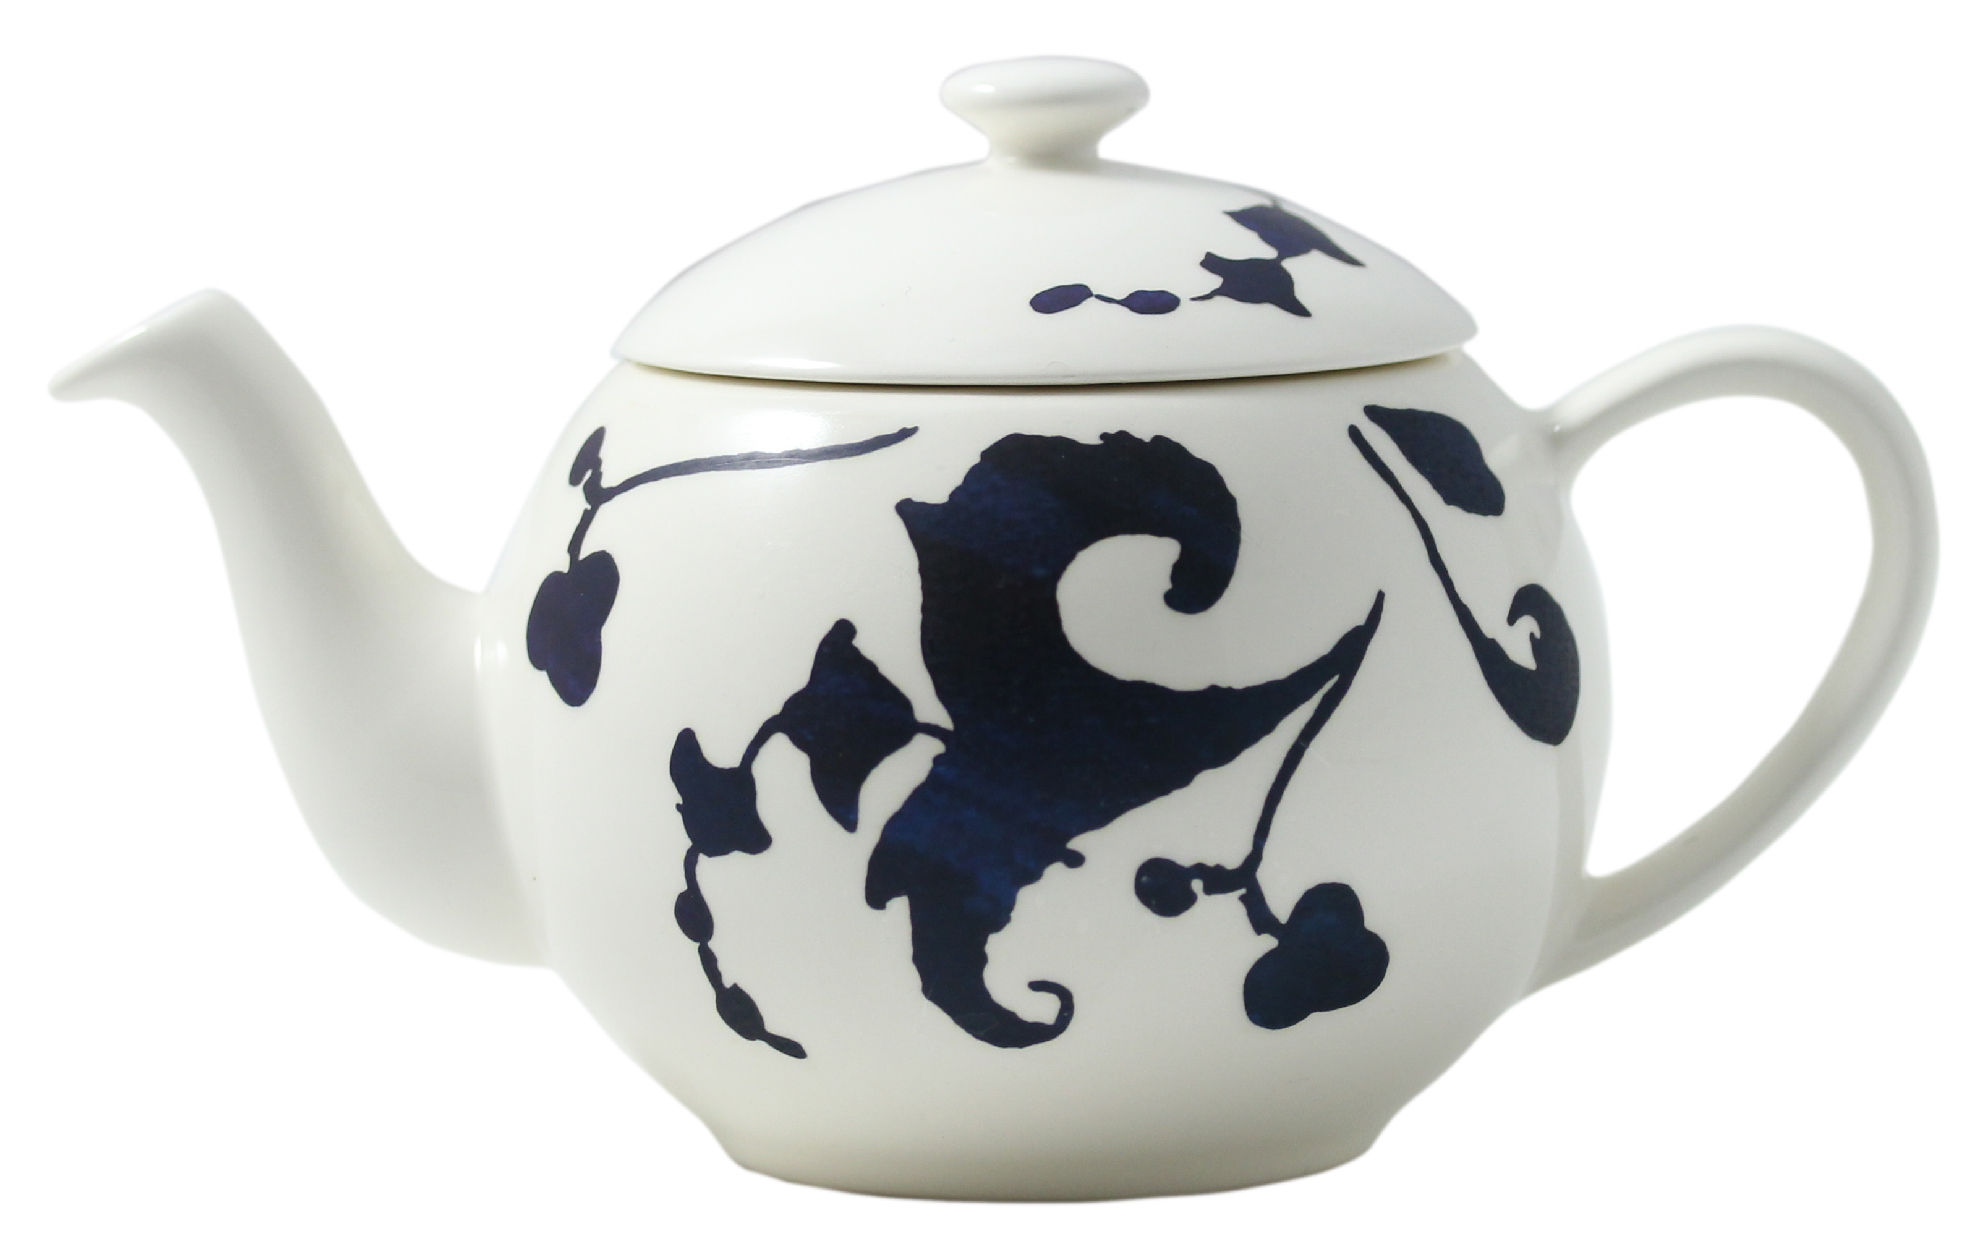 Kitchenware - Kettles & Teapots - Indigo Teapot - /45 cl by GIEN - Blue/White background - Gien faience